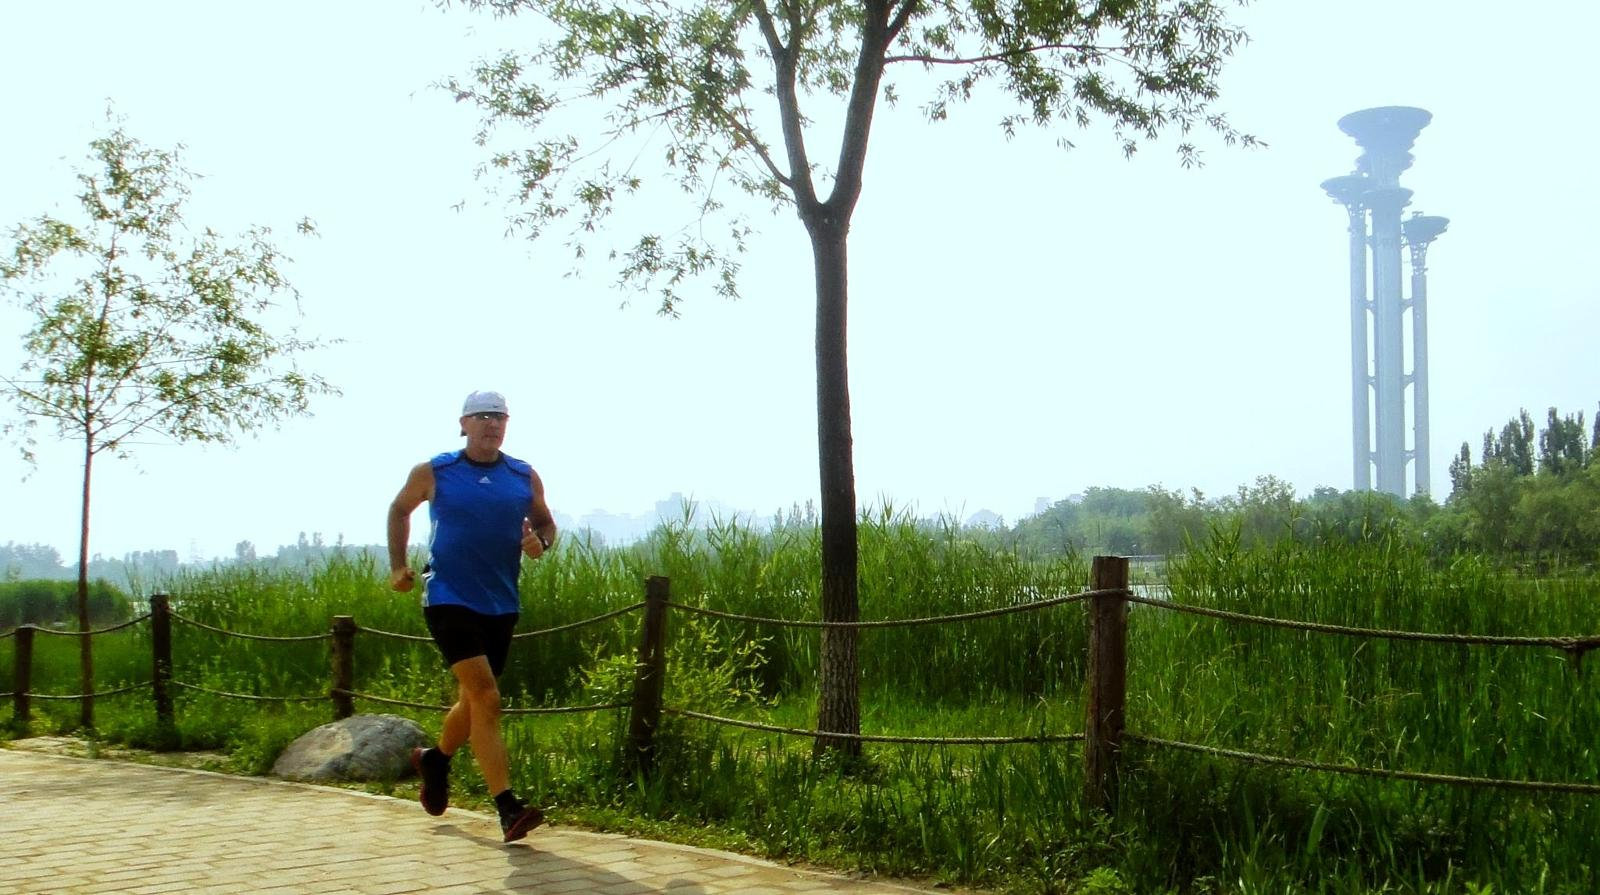 Photo of 10.1 km Beijng, Olympic Forest Park, China 5-25-13 (Jon De Leon)